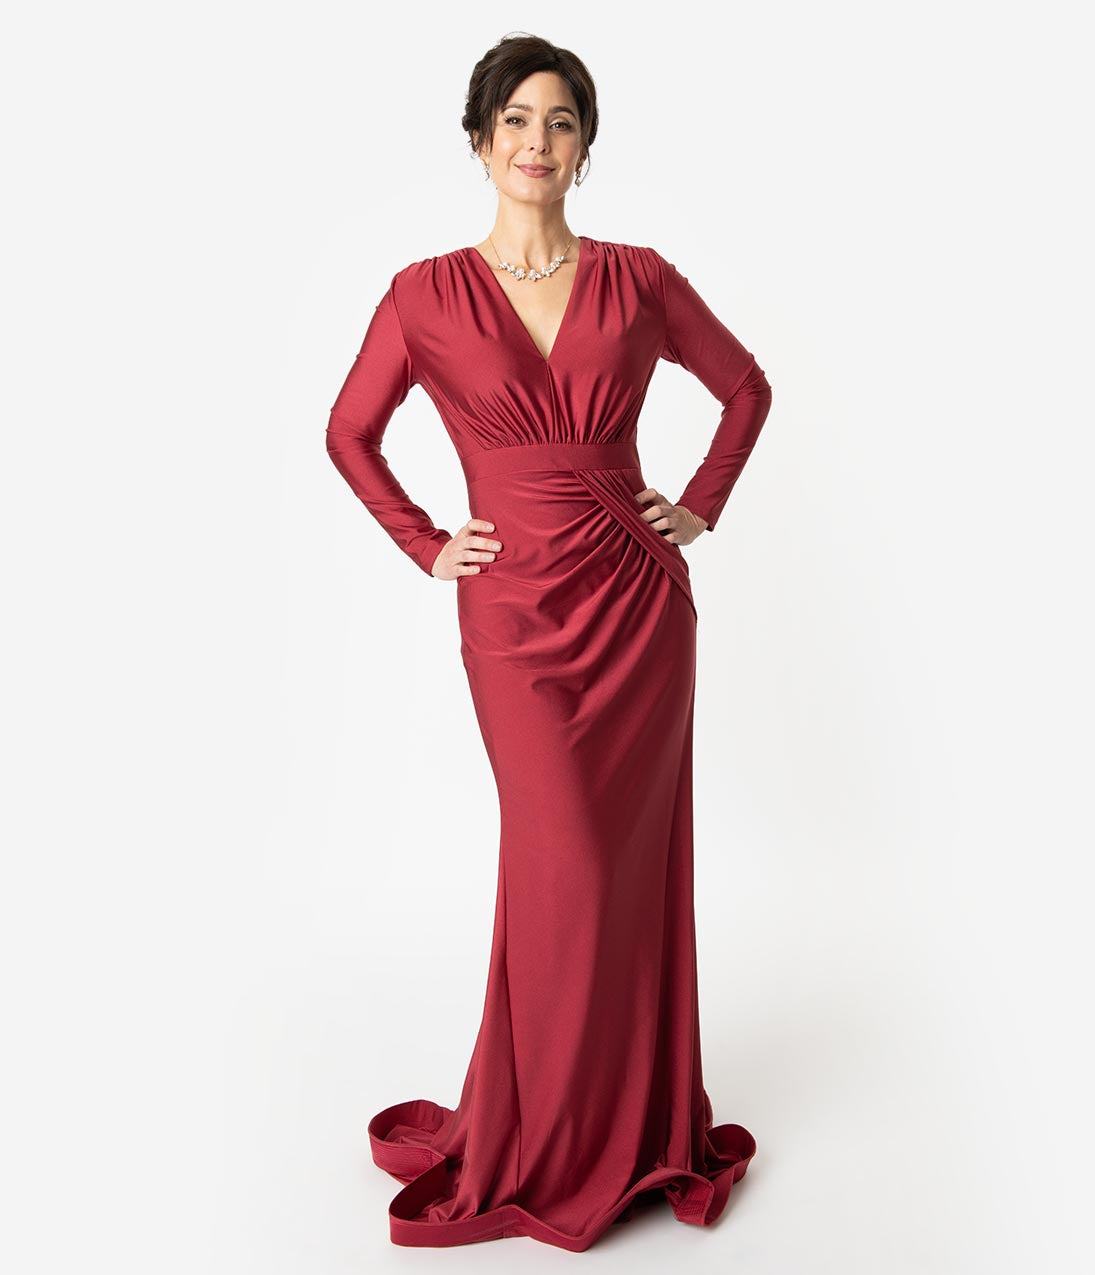 Vintage Evening Dresses and Formal Evening Gowns Burgundy Red Ruched Long Sleeve Modest Sheath Gown $118.00 AT vintagedancer.com